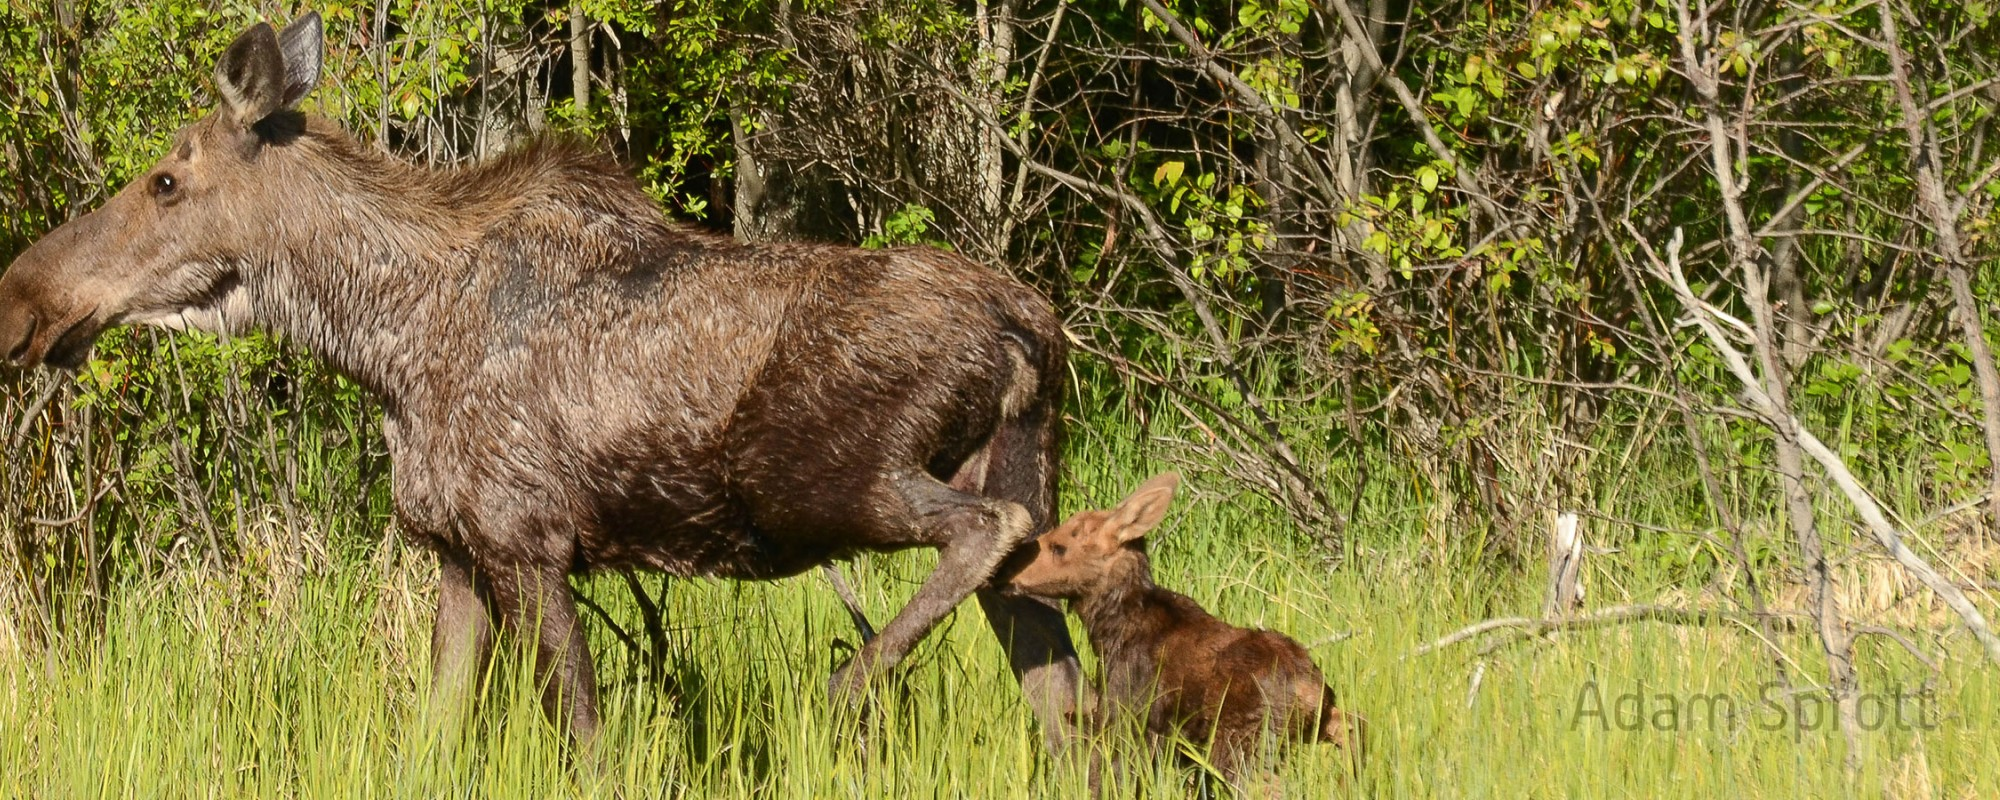 assessing pathogen prevalence and the health of ungulates in west